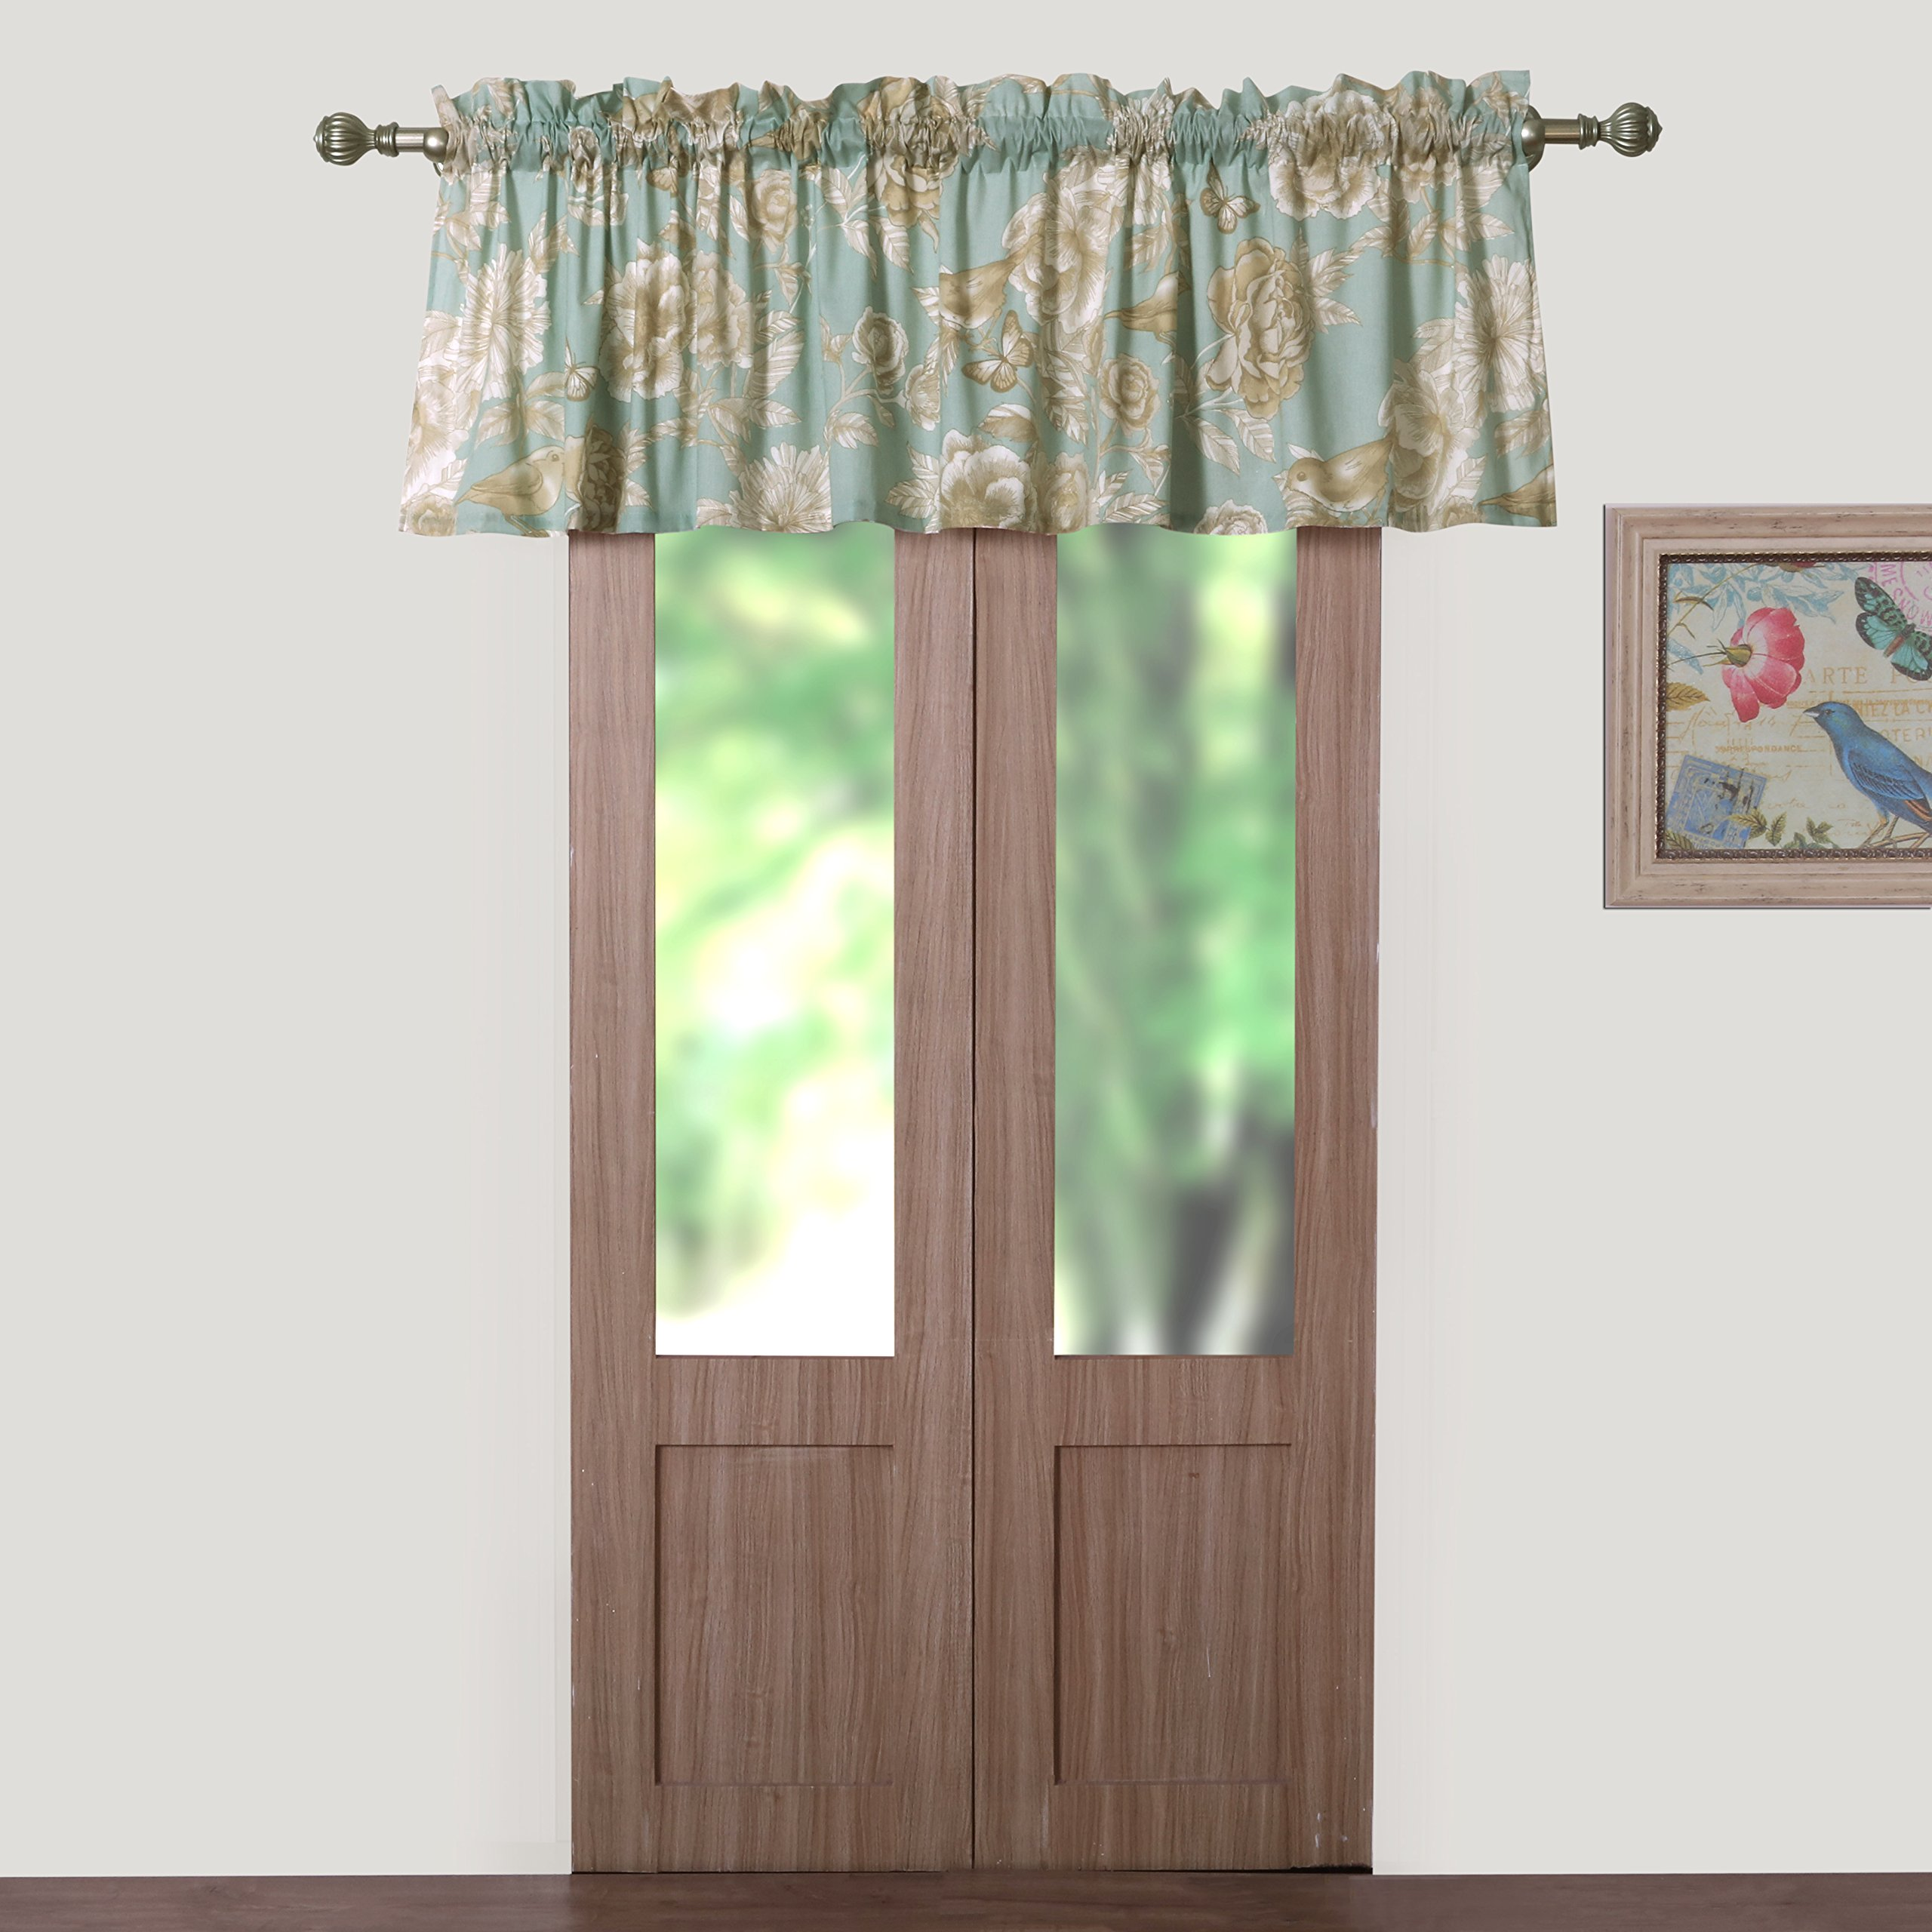 Barefoot Bungalow - Naomi Spa Window Valance